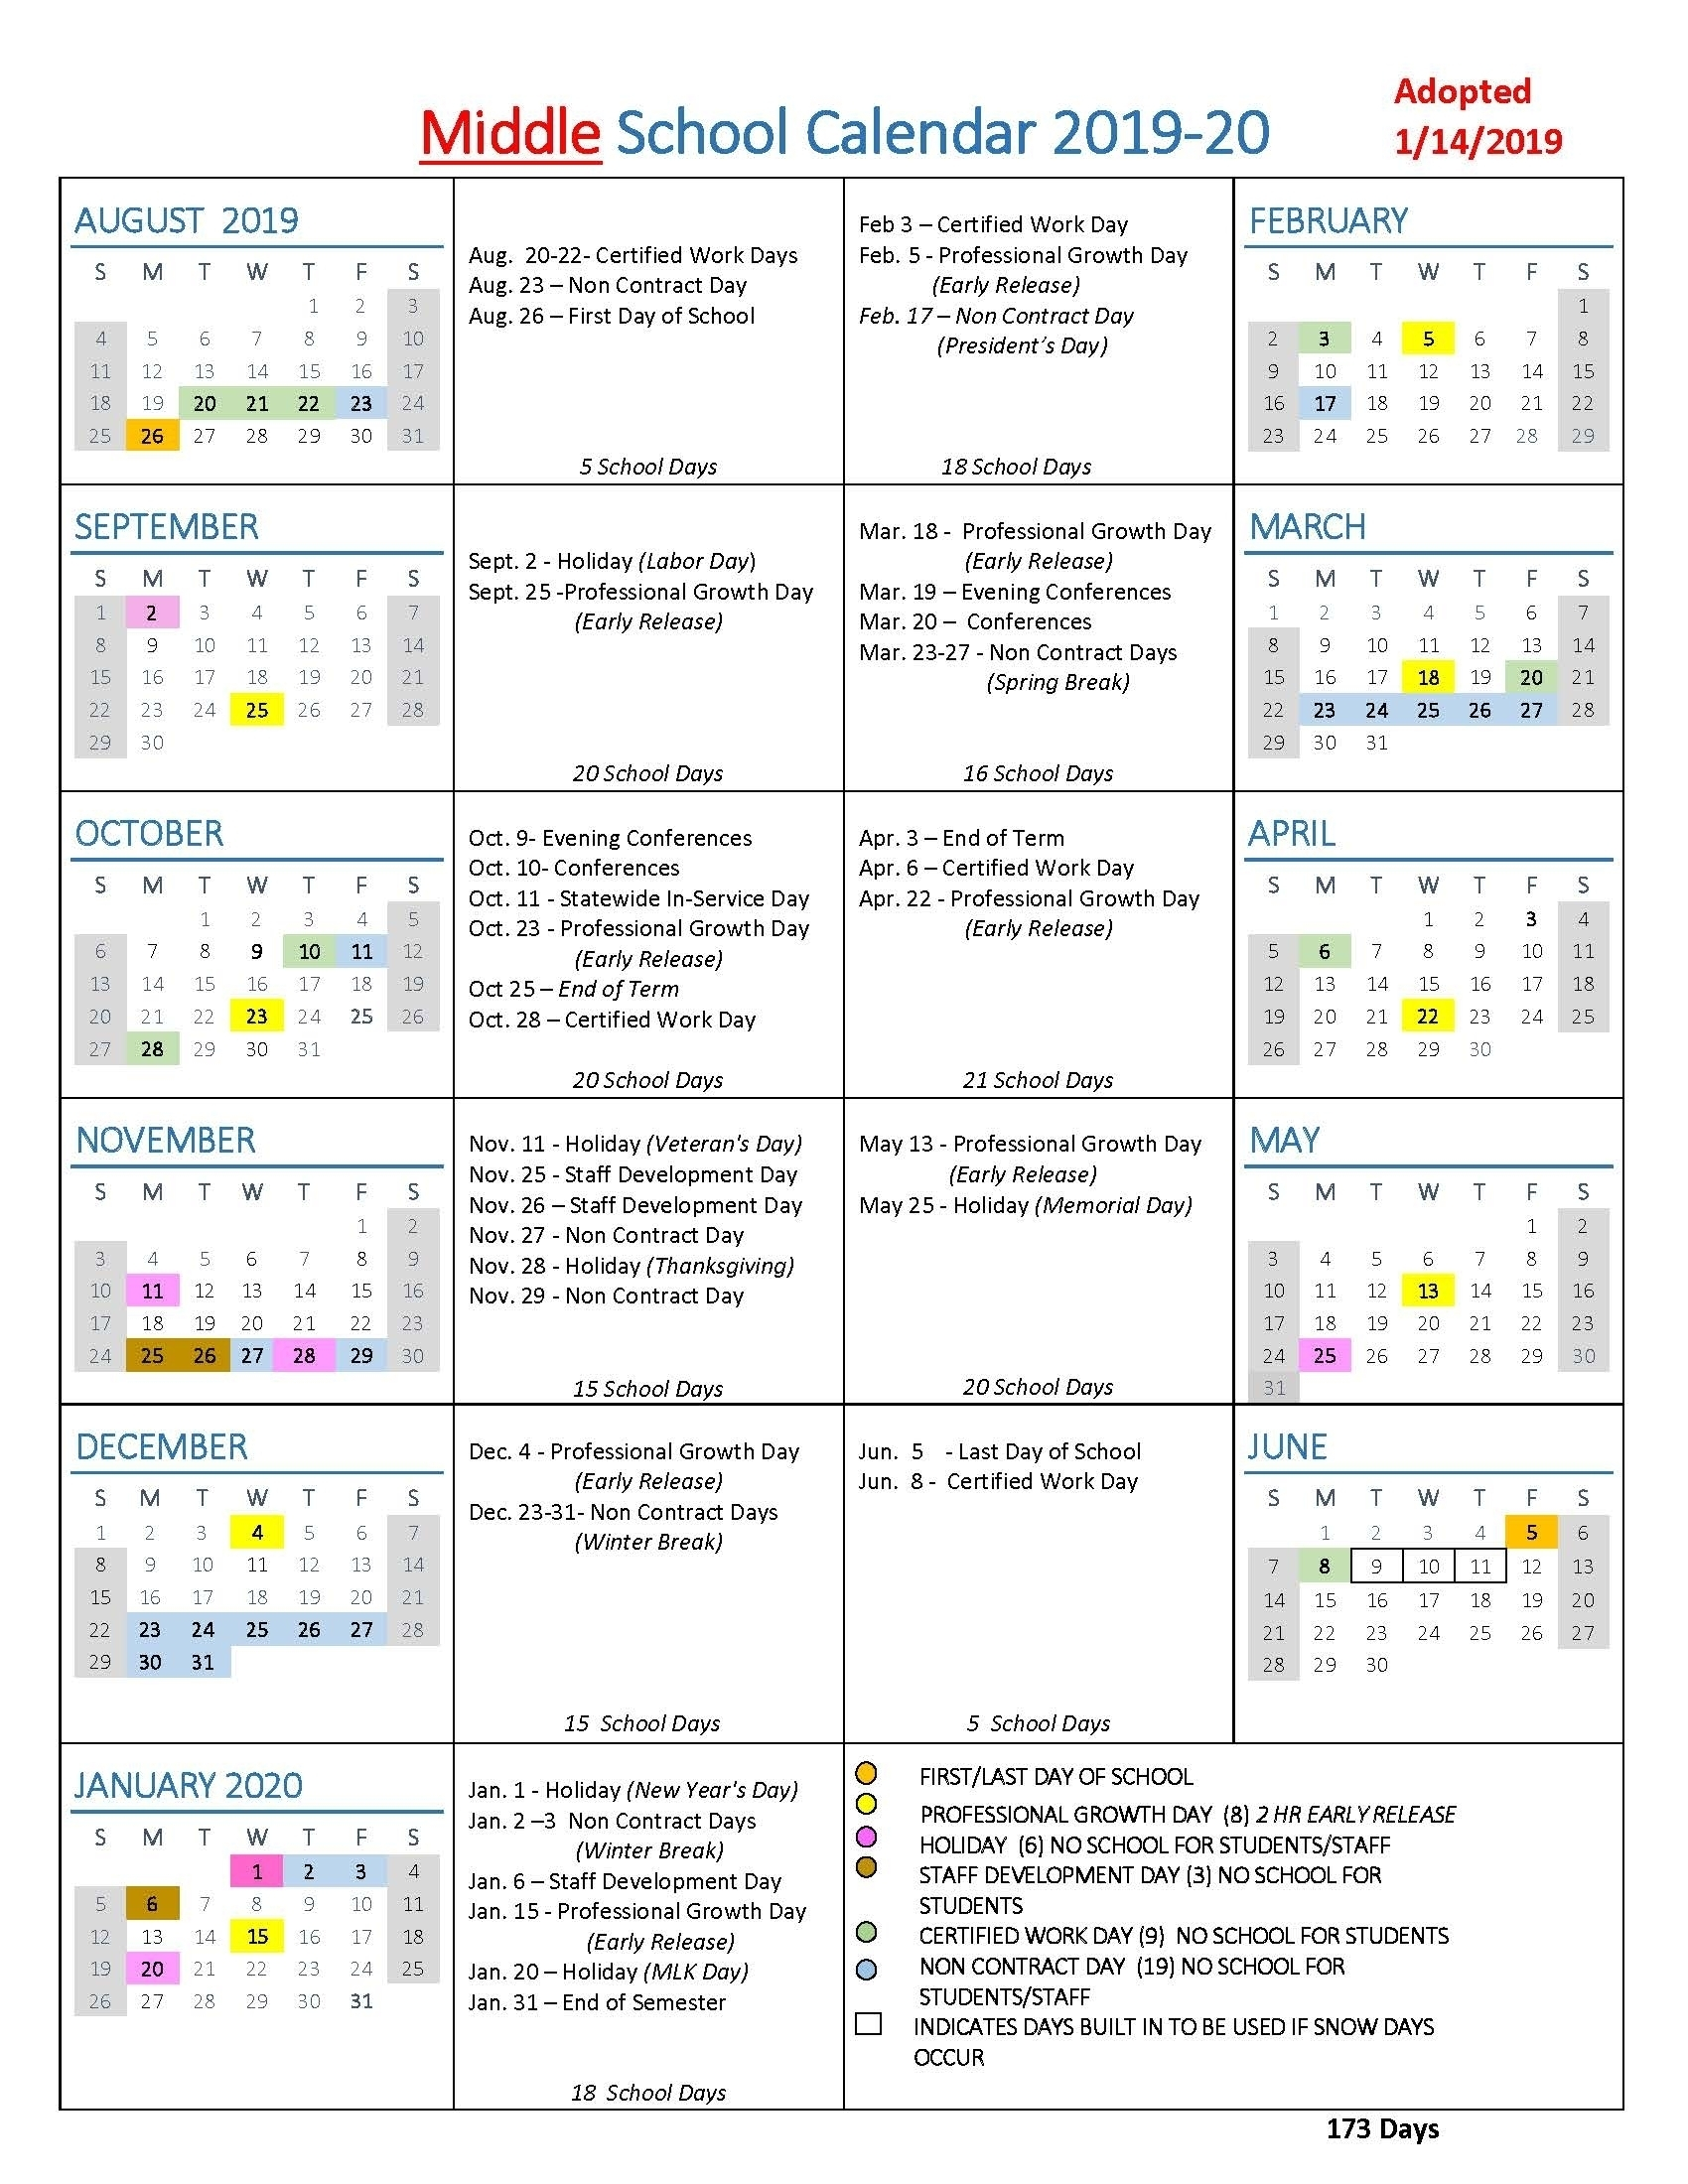 Calendar With All The Special Days In 2020 - Calendar for Special Days In 2020 Calendar